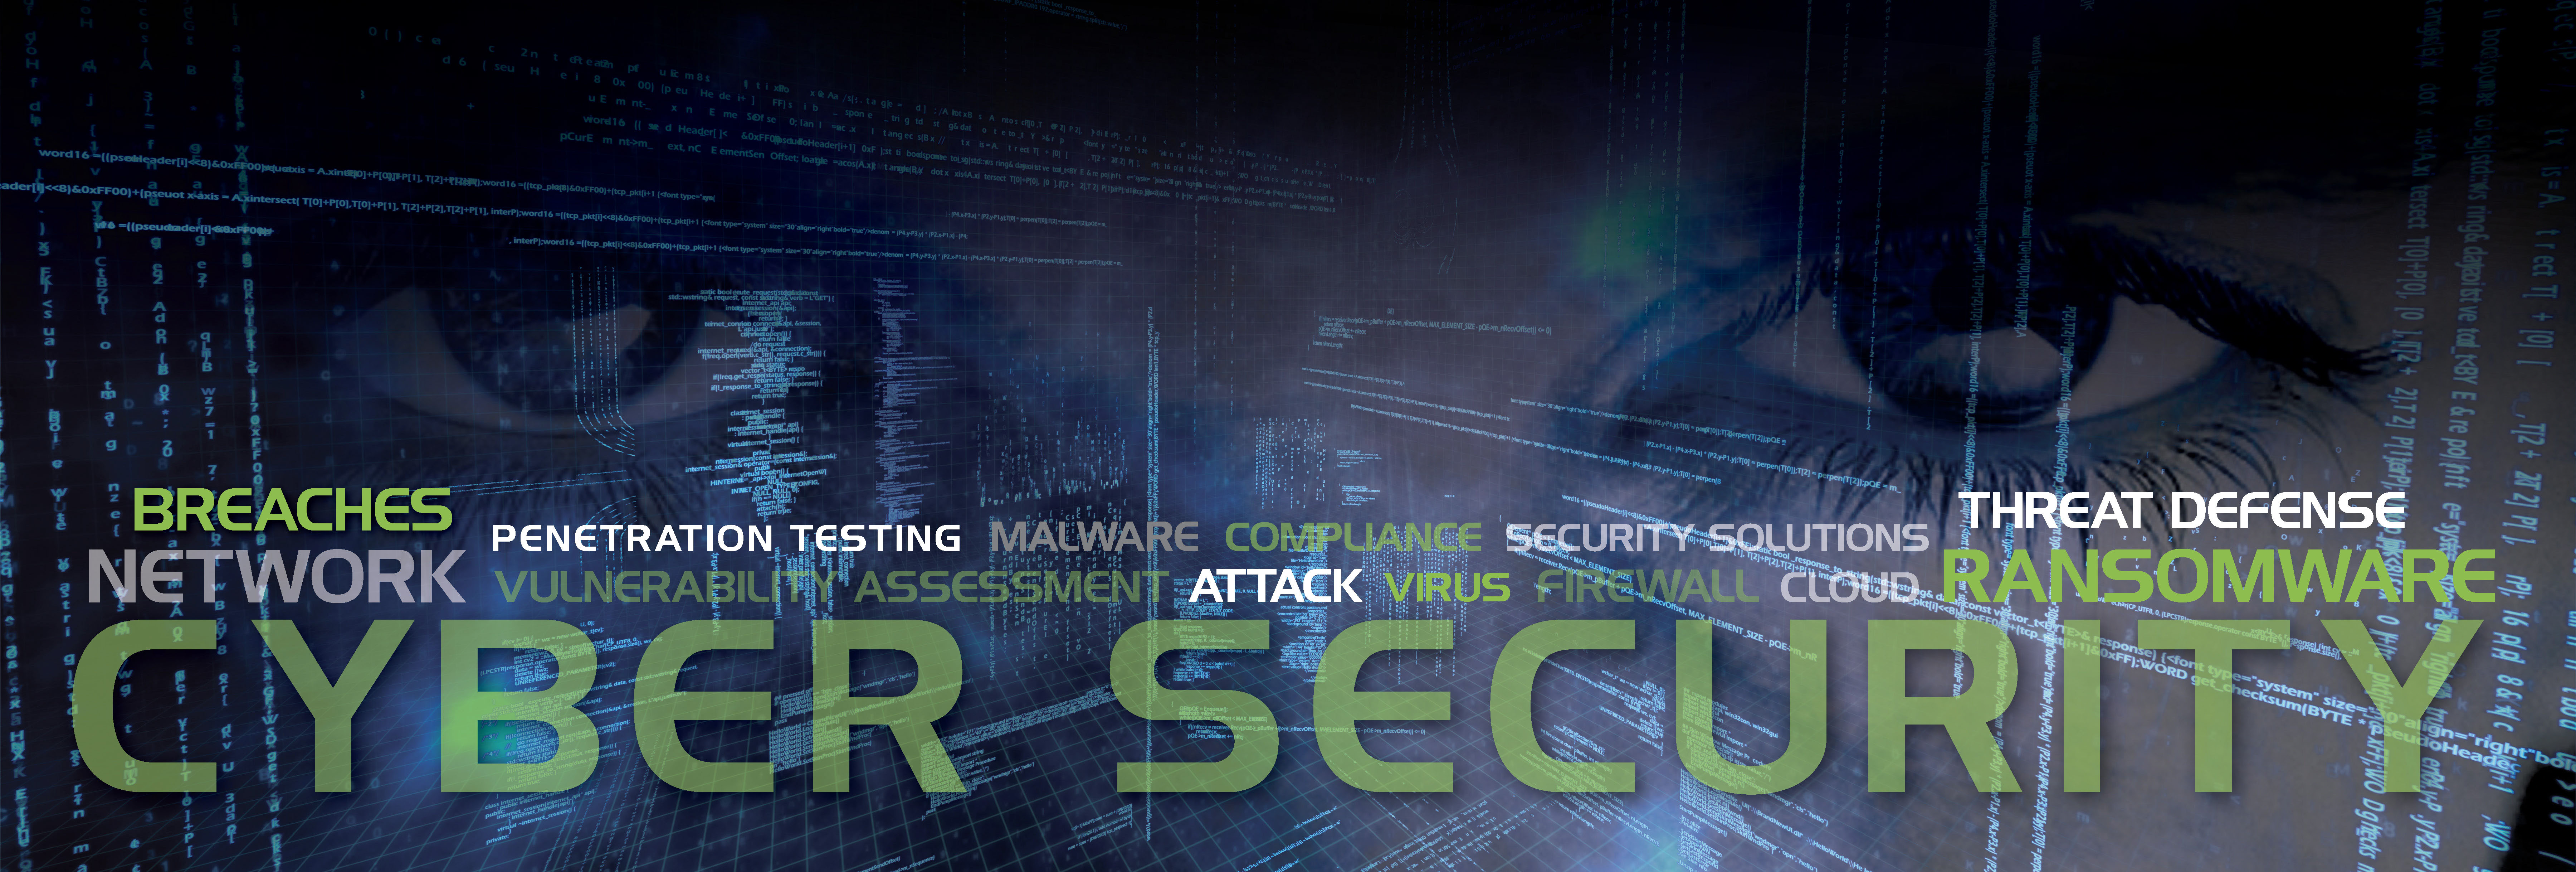 Security Web Banner